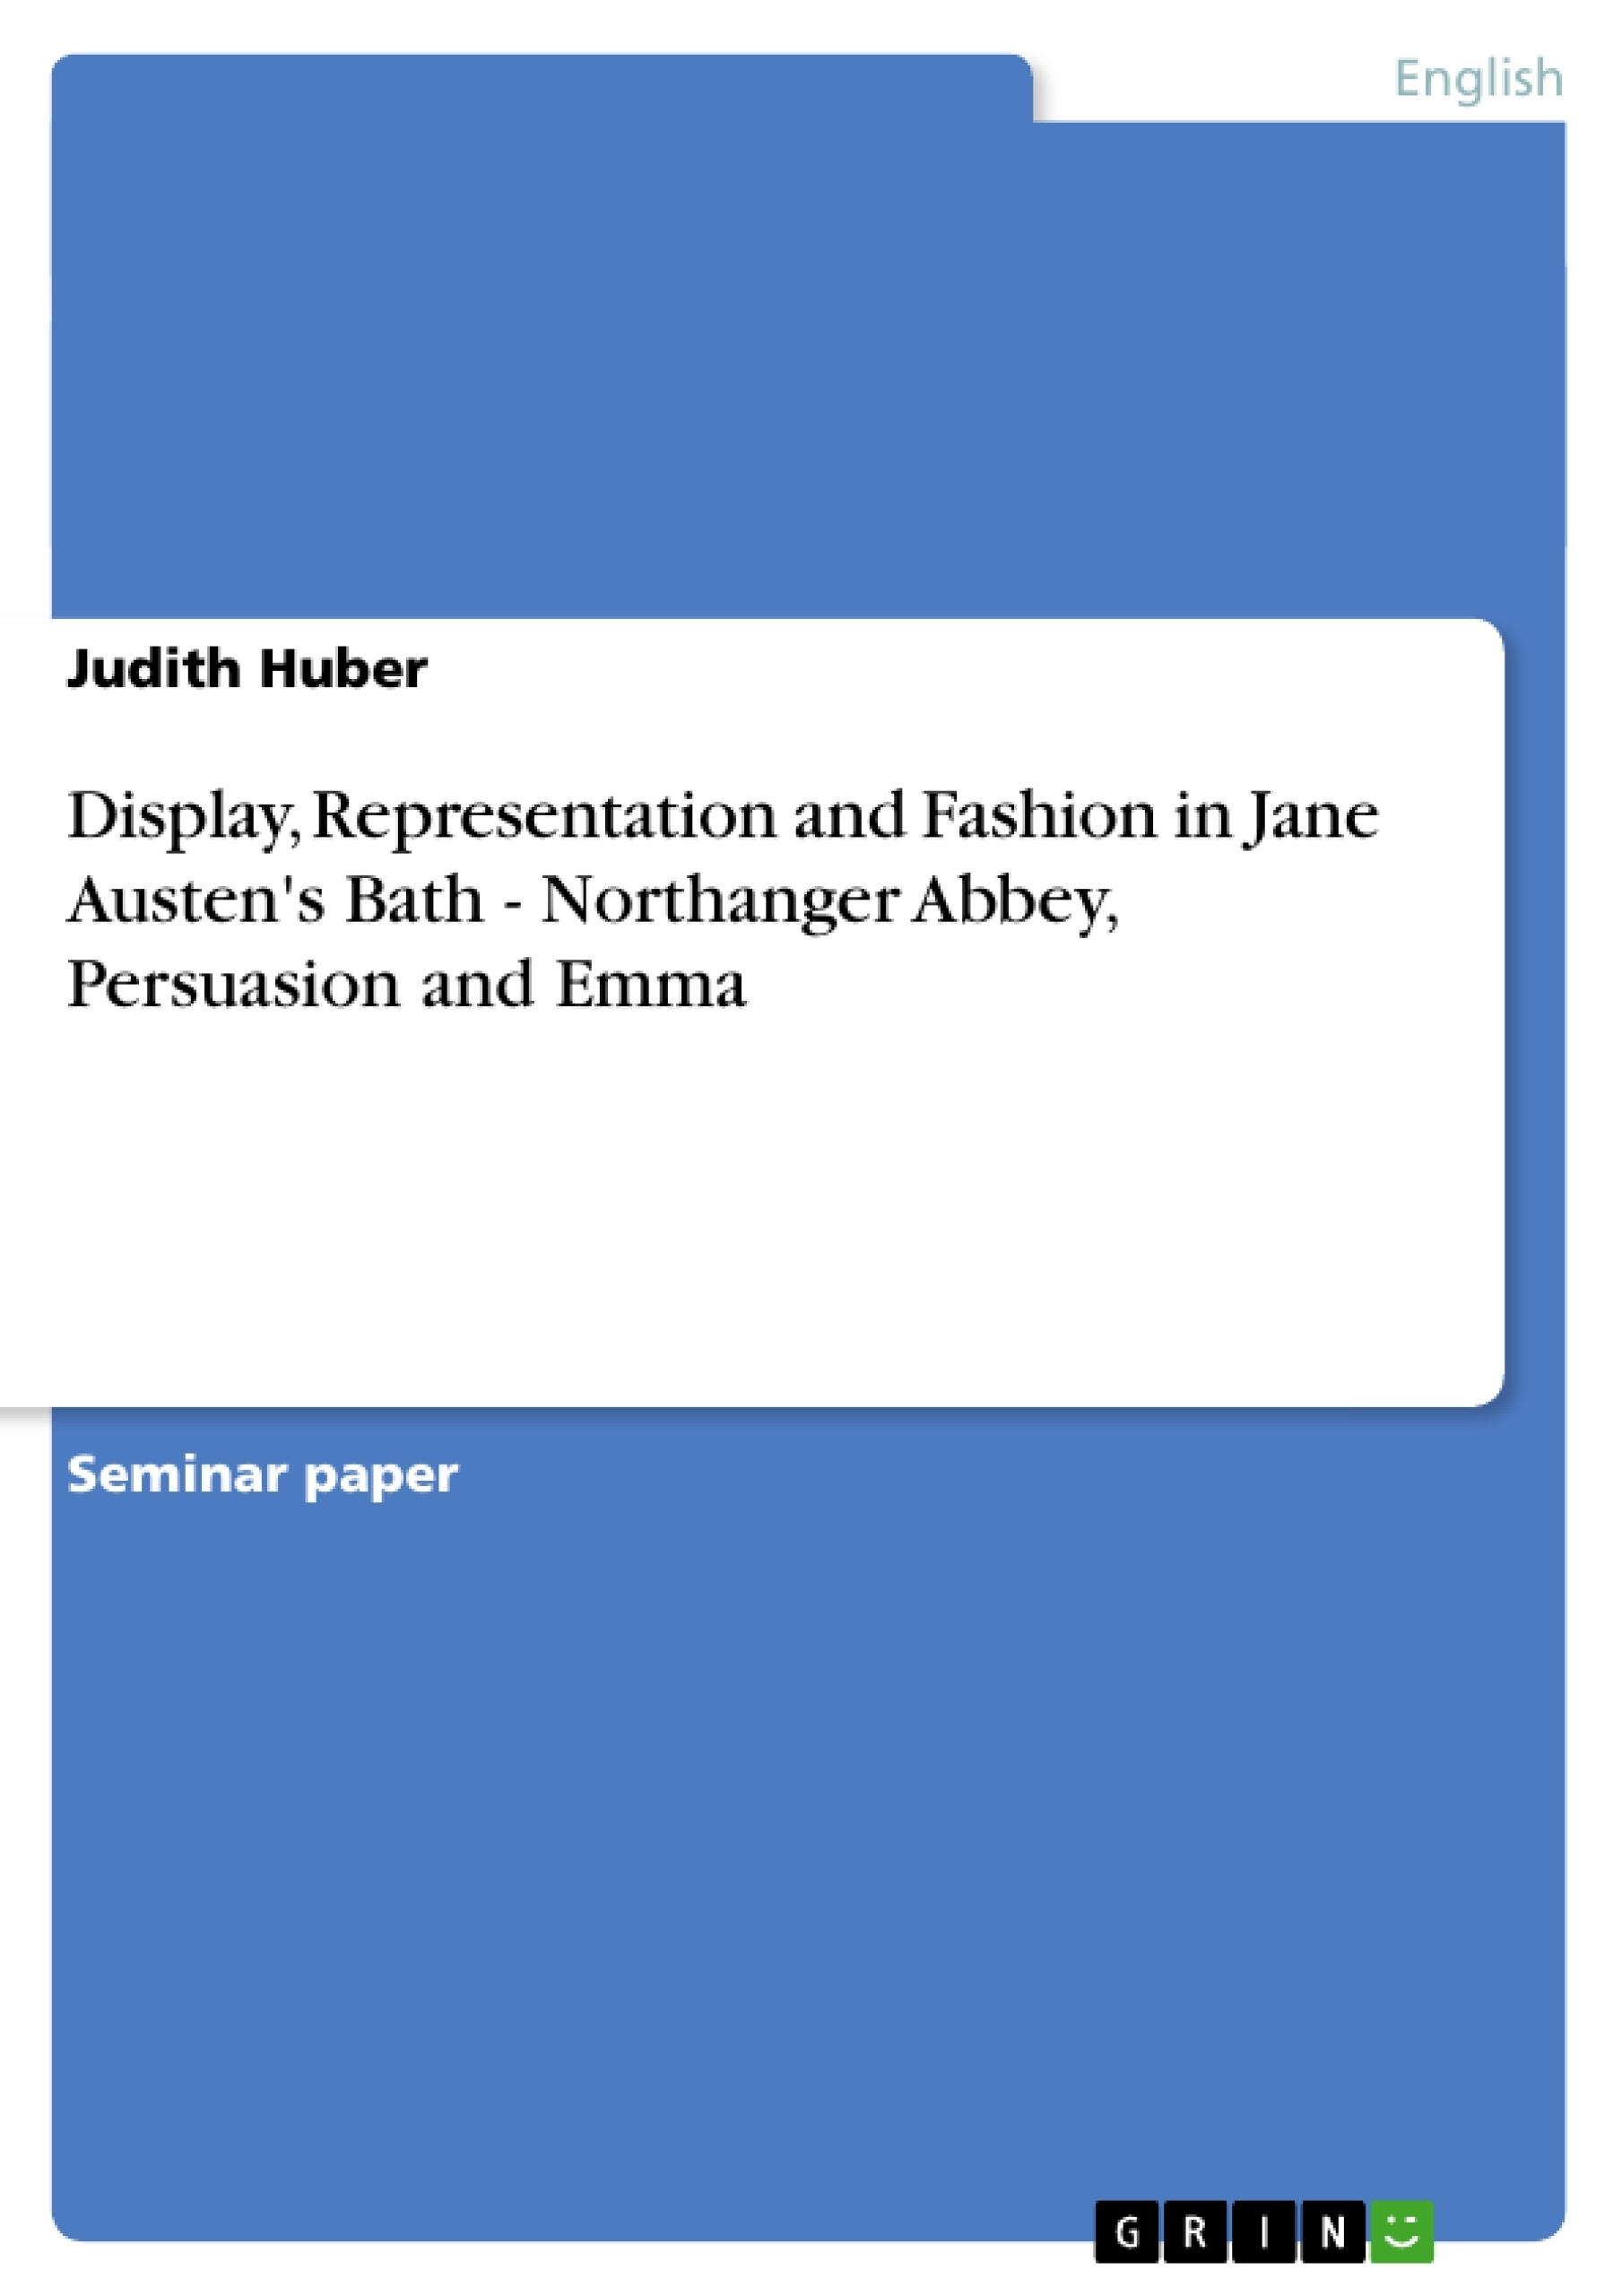 Title: Display, Representation and Fashion in Jane Austen's Bath - Northanger Abbey, Persuasion and Emma